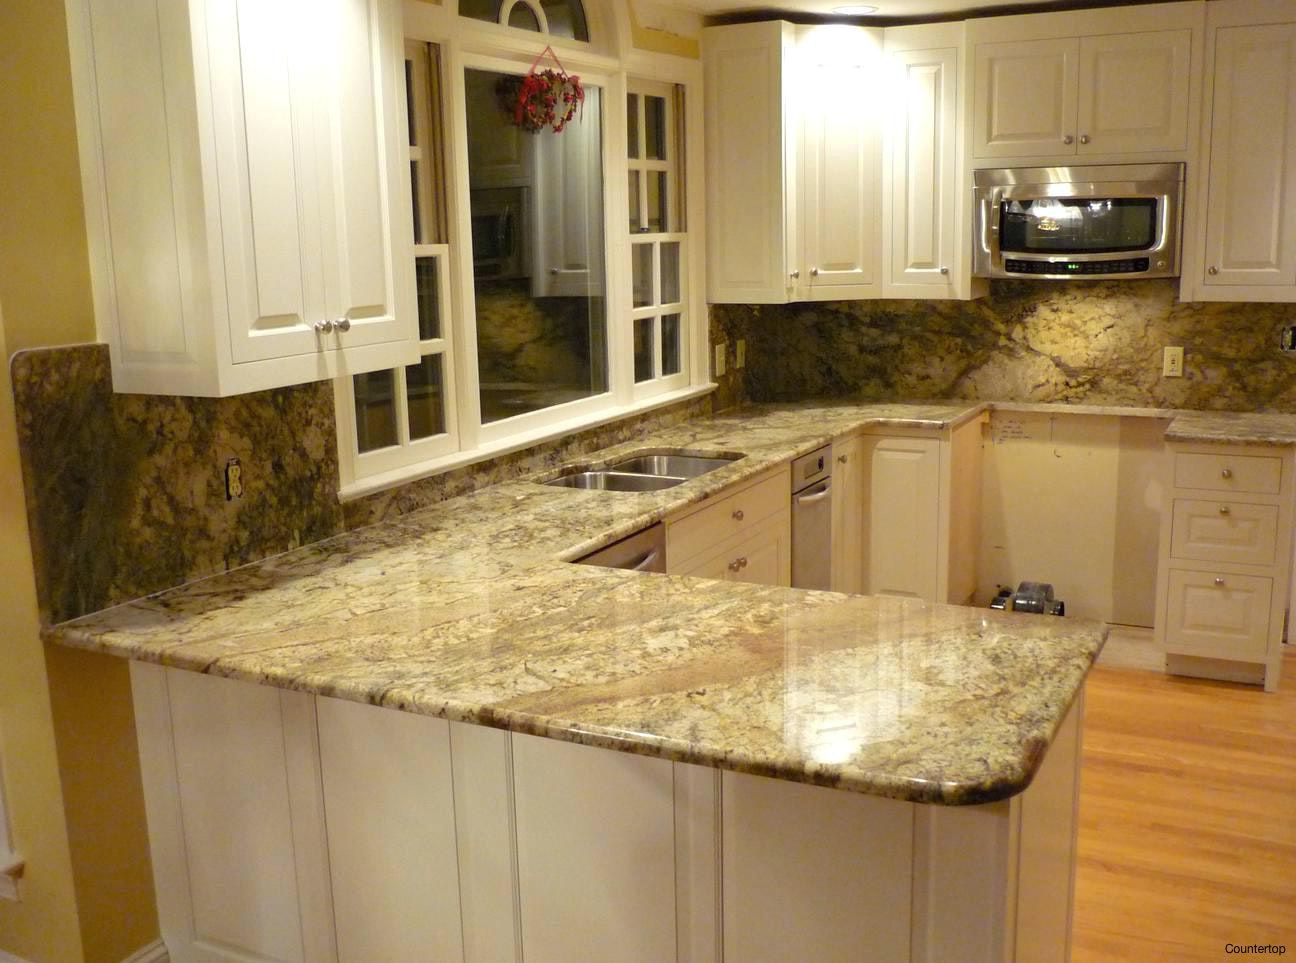 Merveilleux 99+ How Much Is Granite Countertops Per Square Foot Installed   Kitchen  Remodeling Ideas On